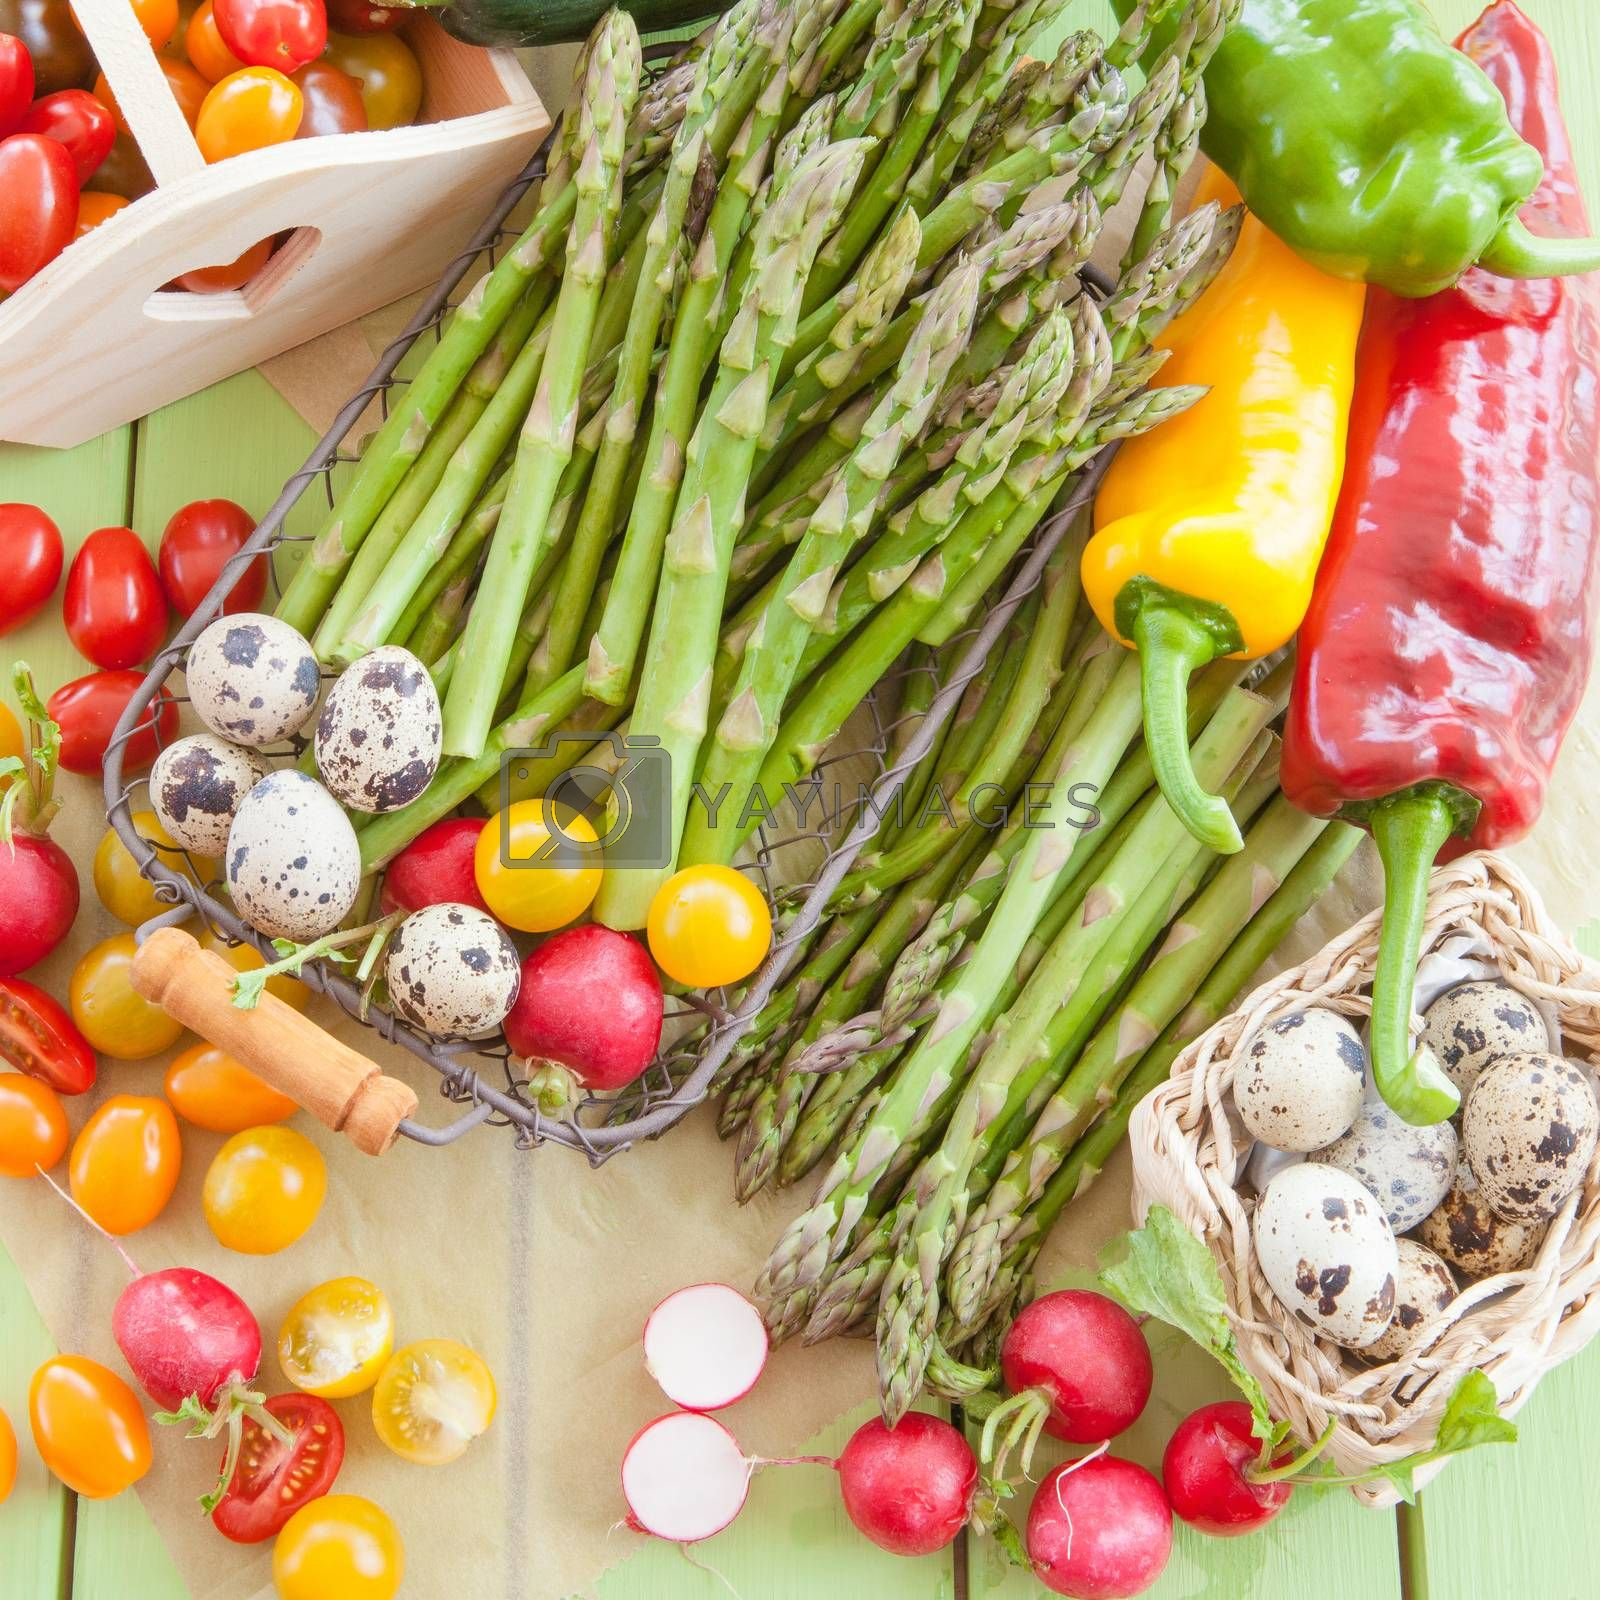 Royalty free image of Green asparagus and other fresh vegetables by BarbaraNeveu